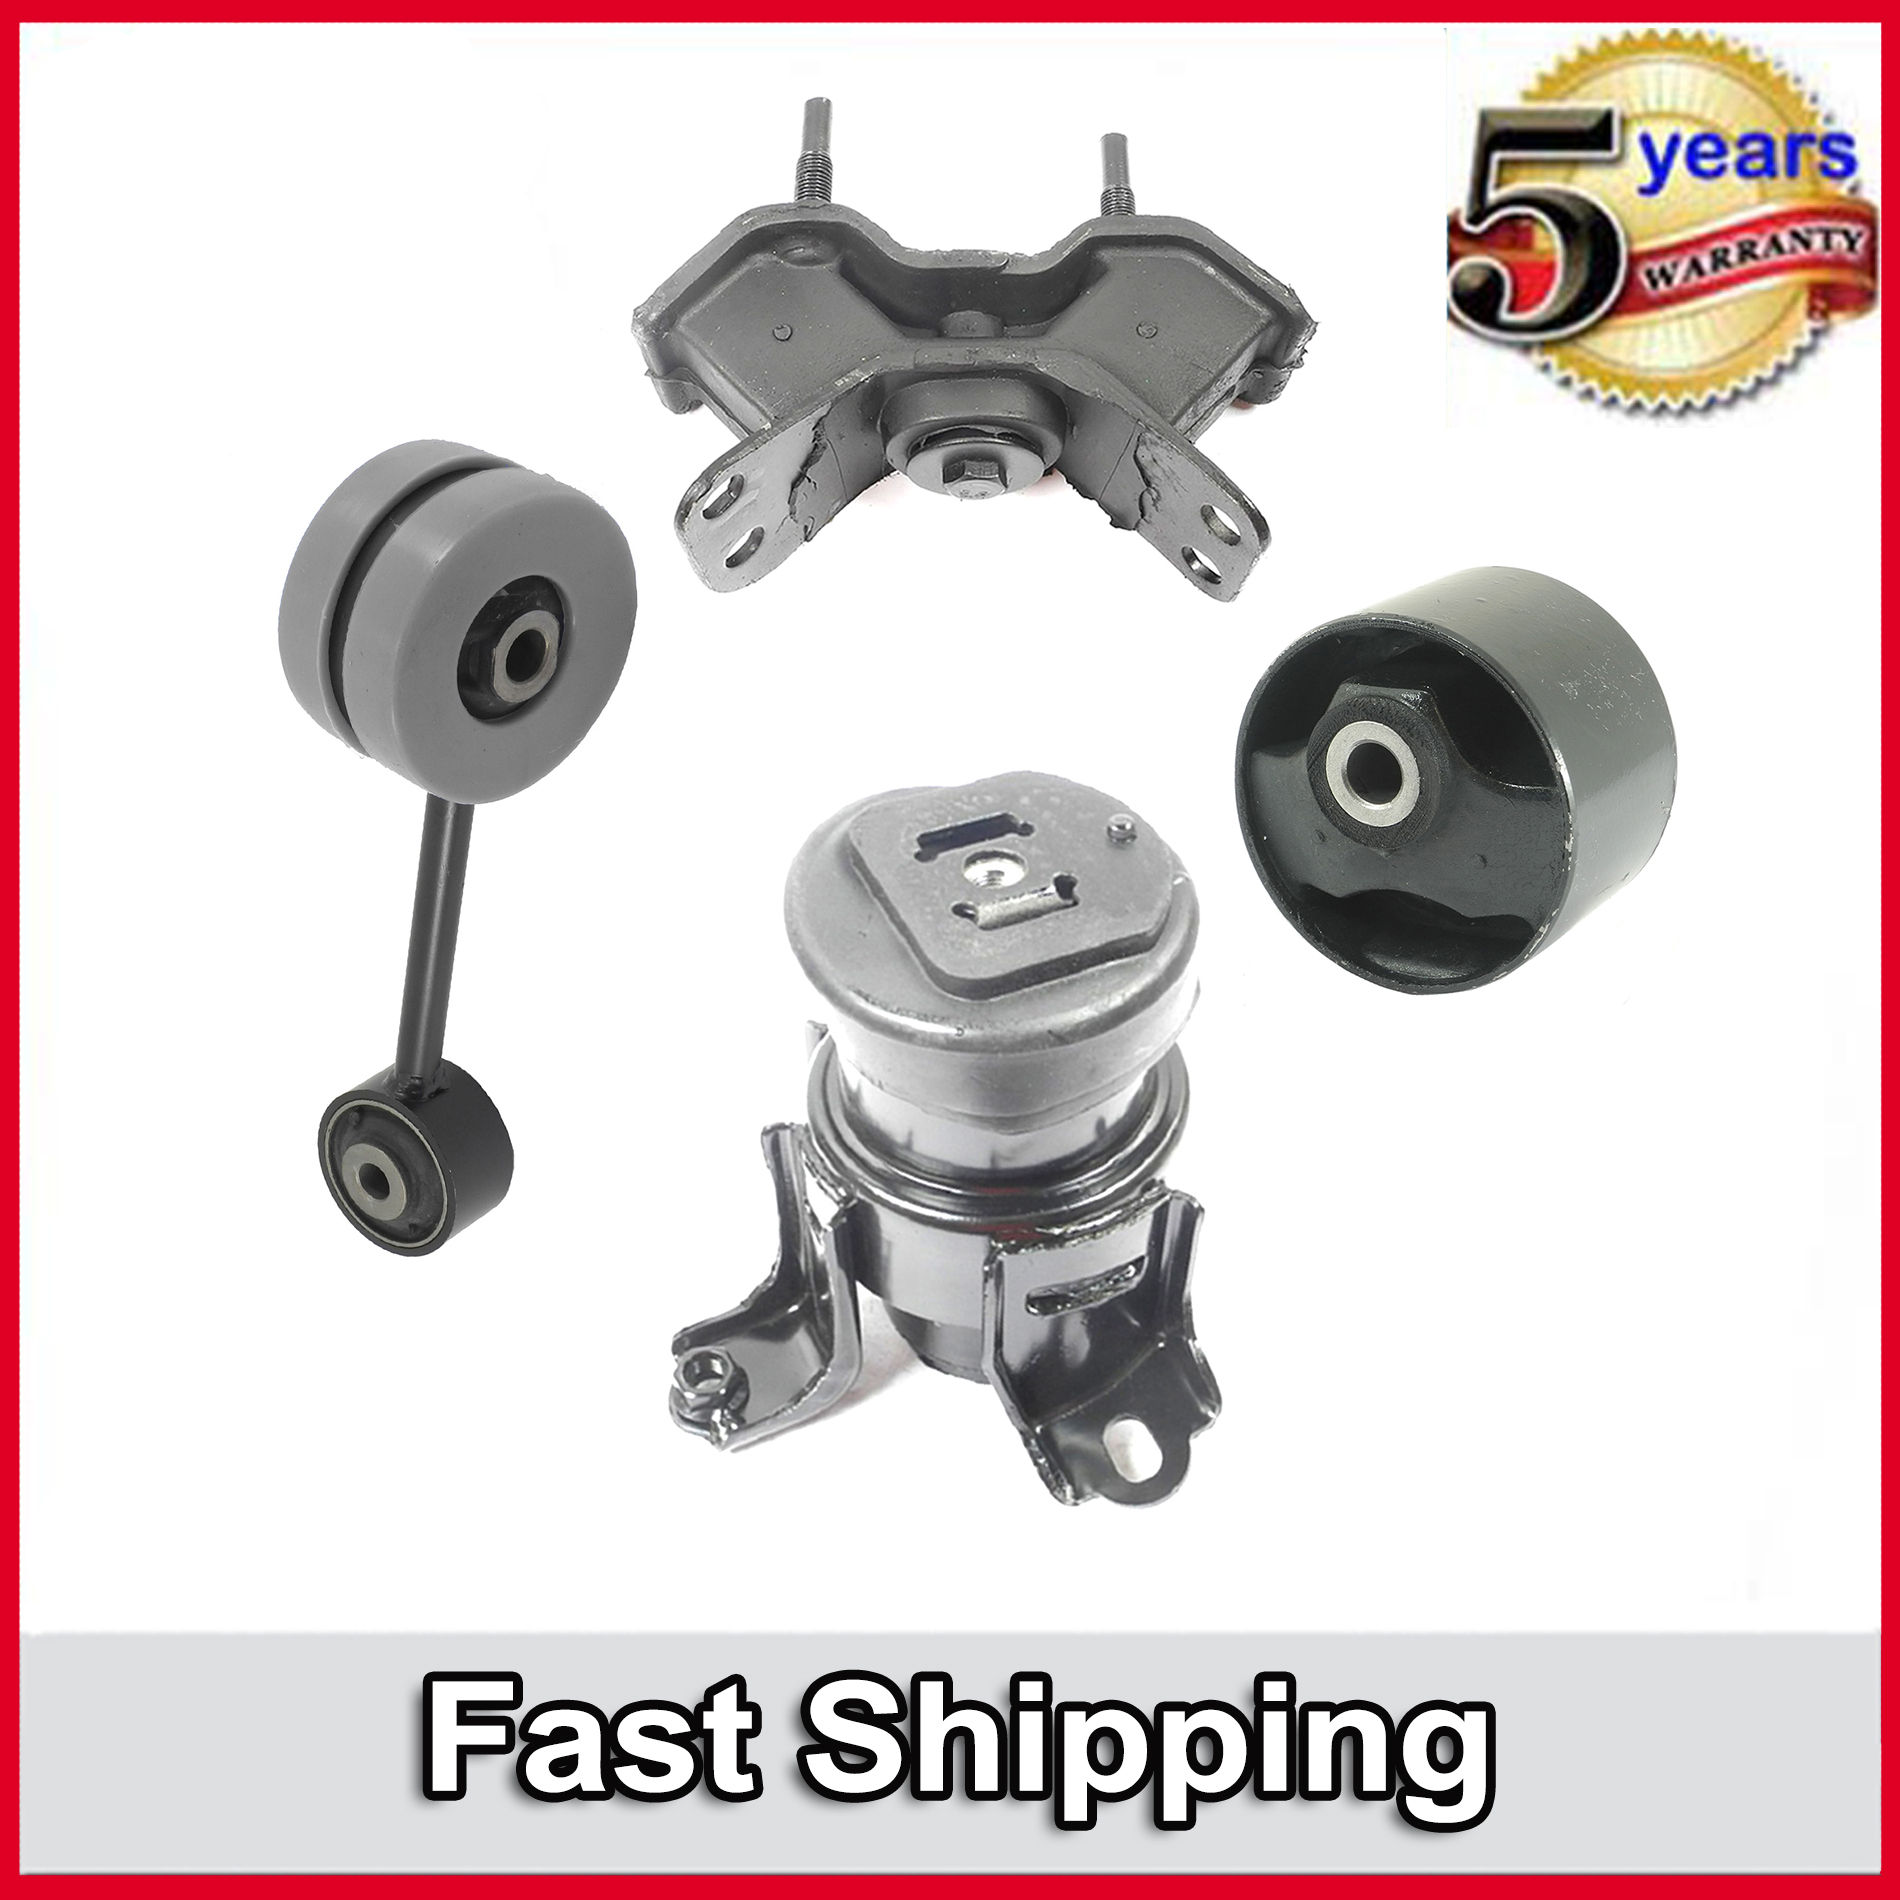 Camry ES300 for Auto Engine Motor /& Trans Mount 4PCS 1997-2001 for Toyota Lexus